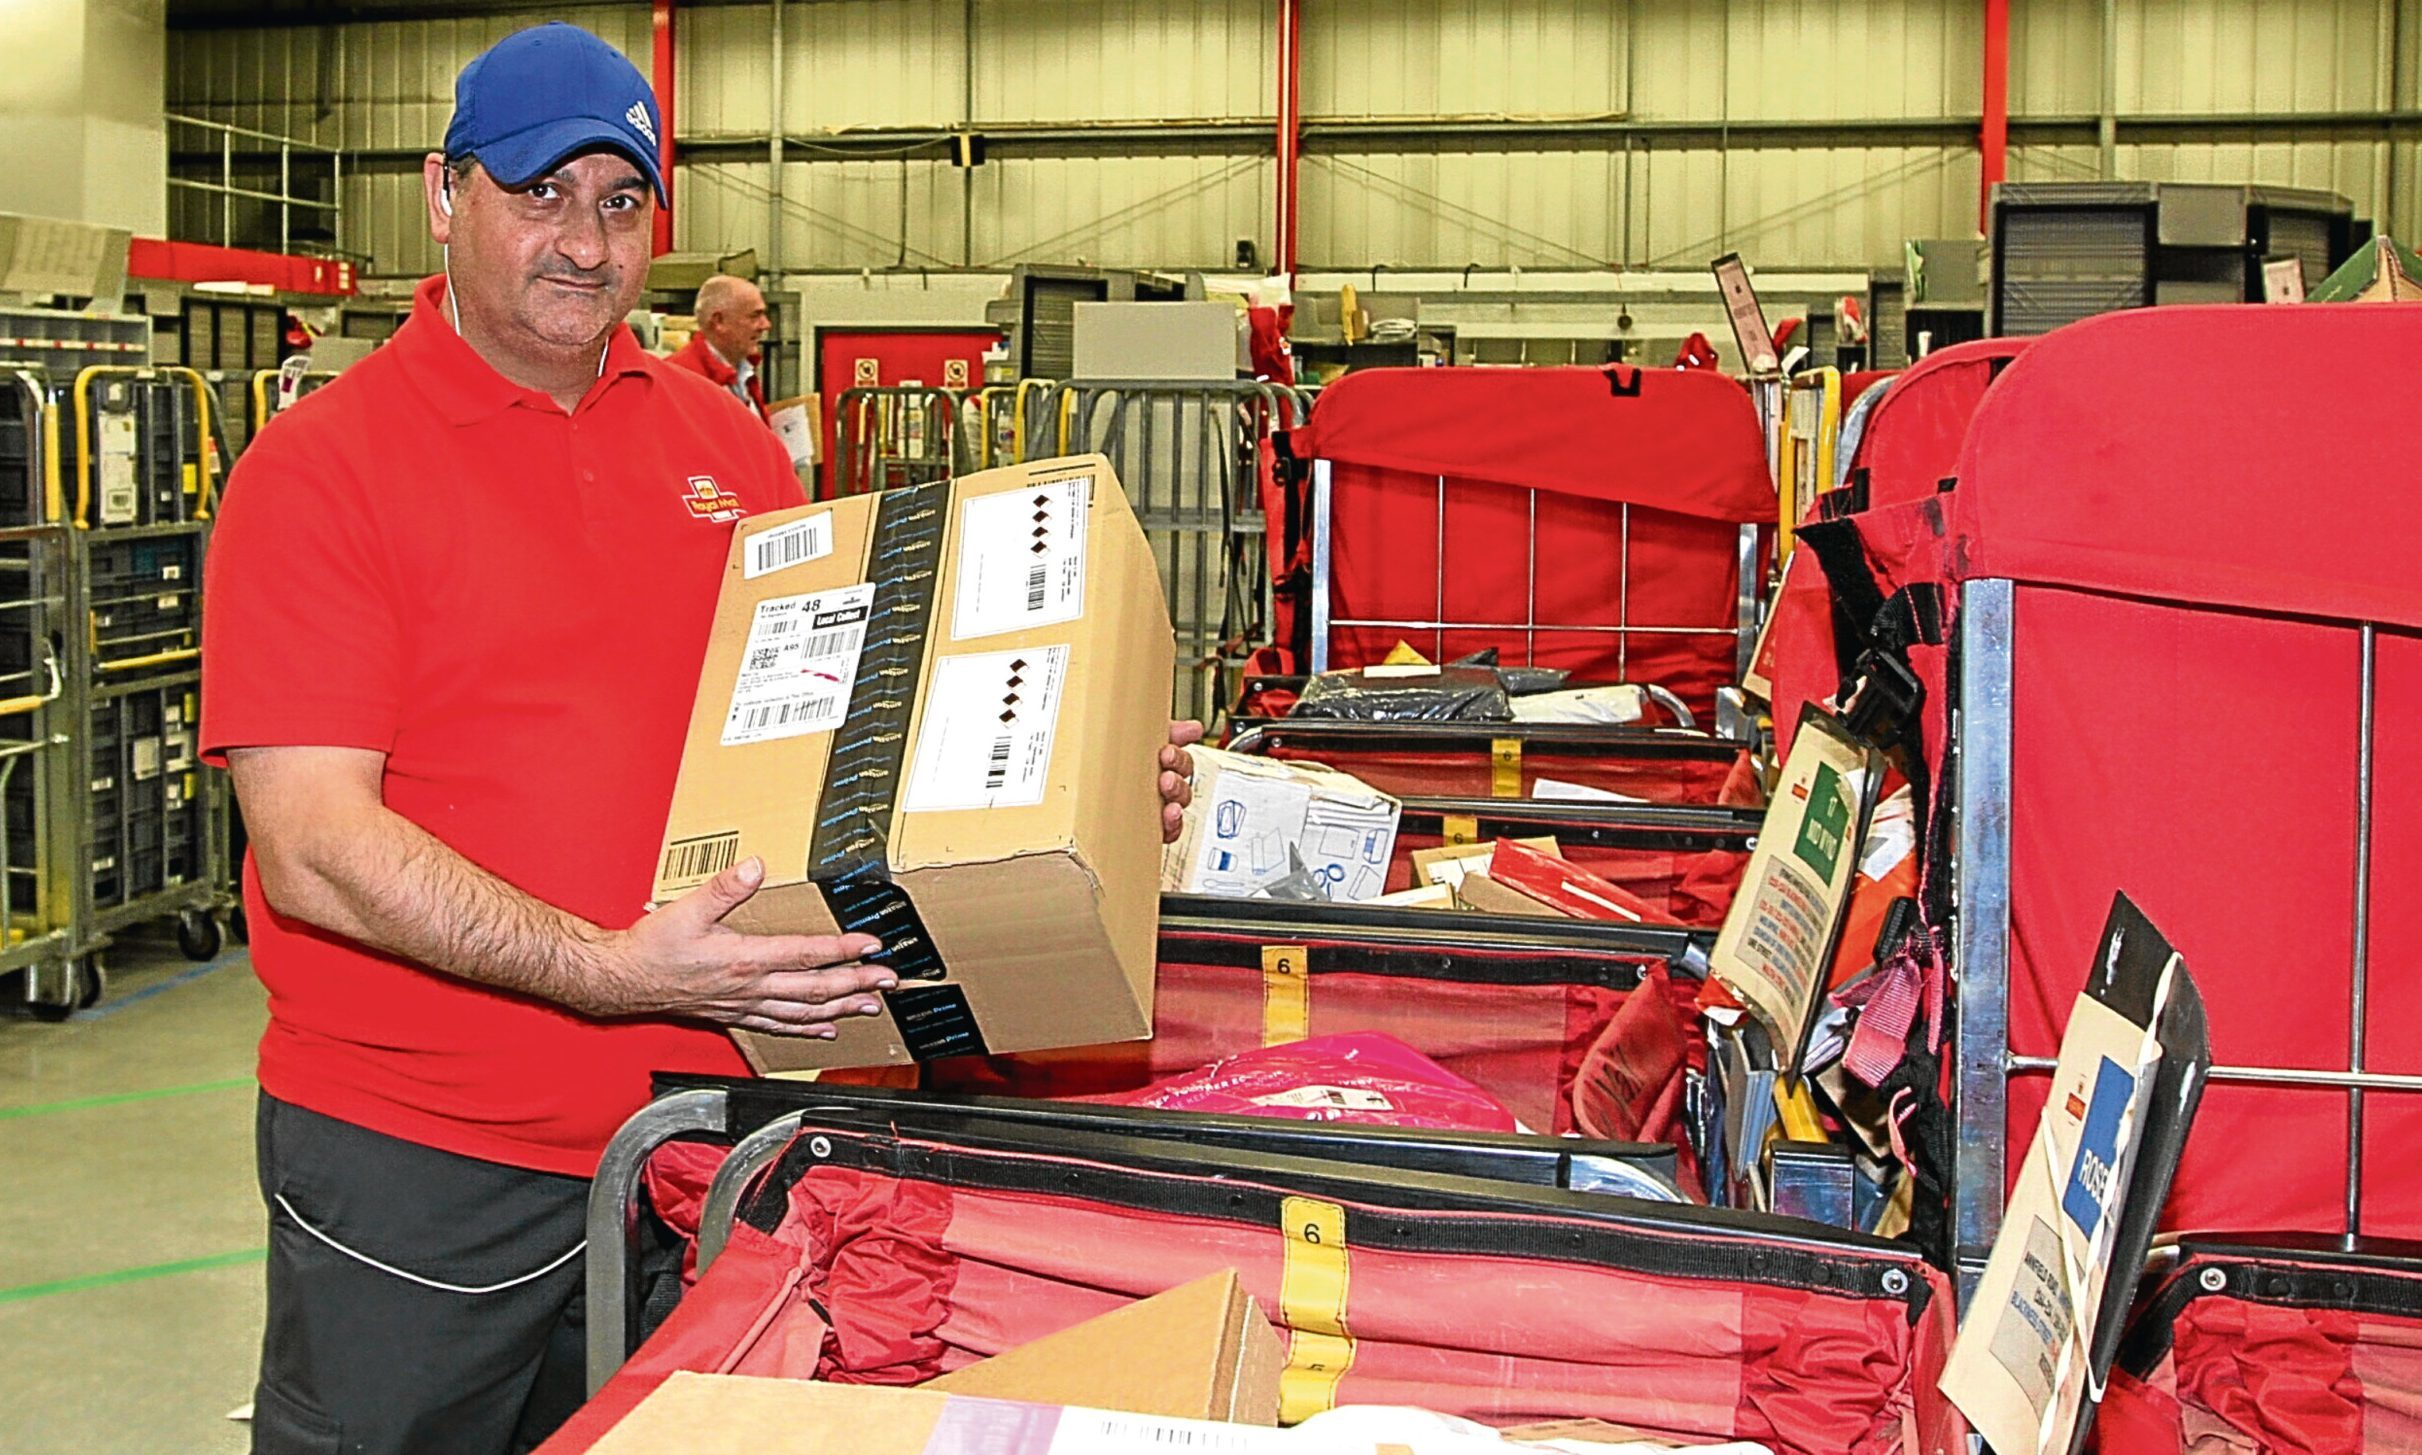 David Fotheringham begins the daunting process of sorting the festive mail.